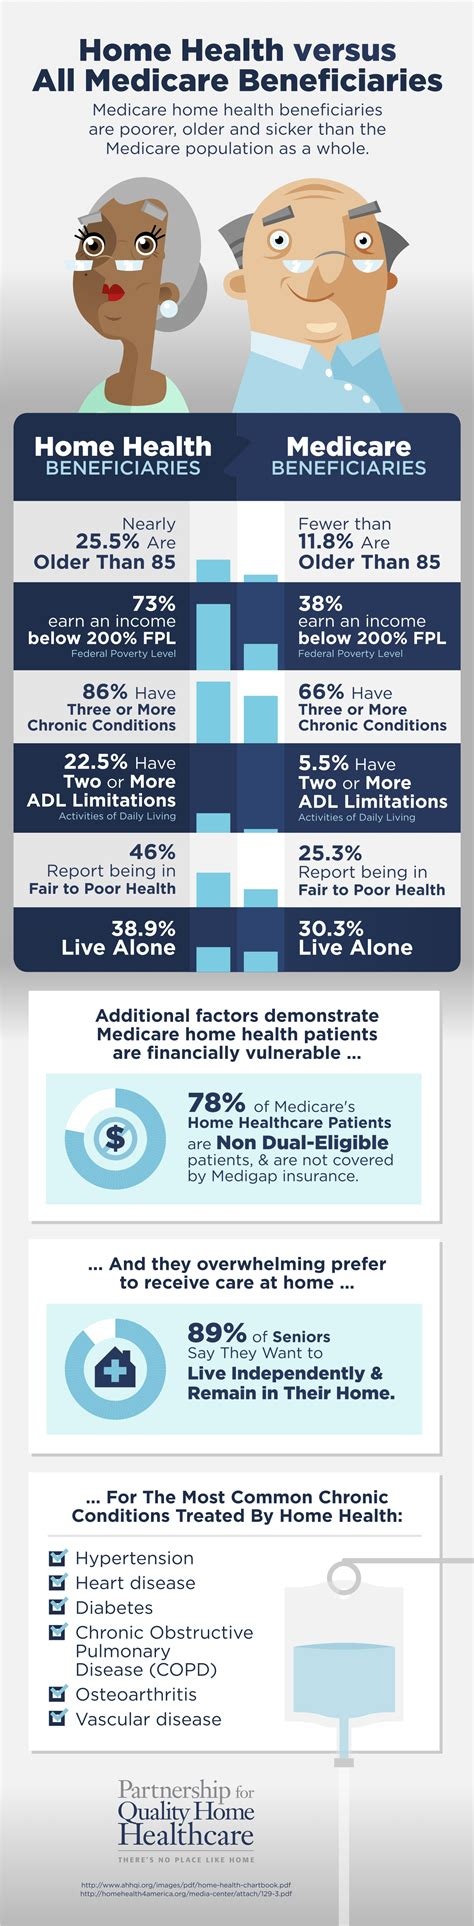 infographic home health patients versus all medicare